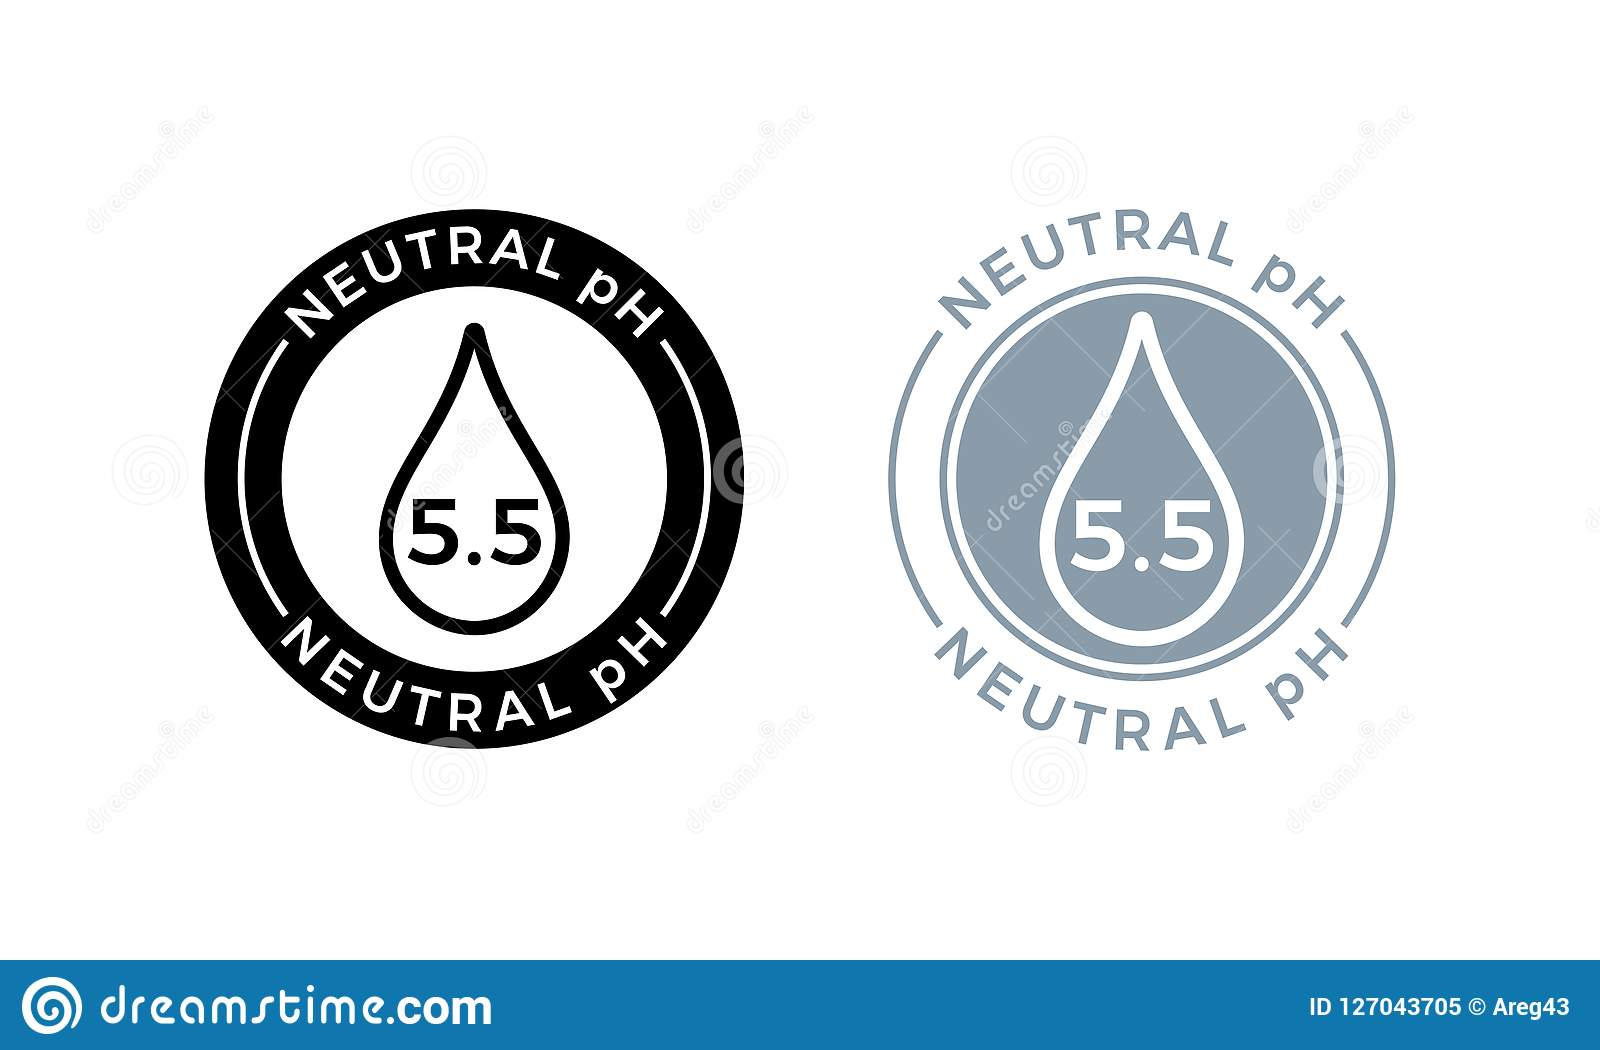 neutral ph balance logo icon for shampoo or cream